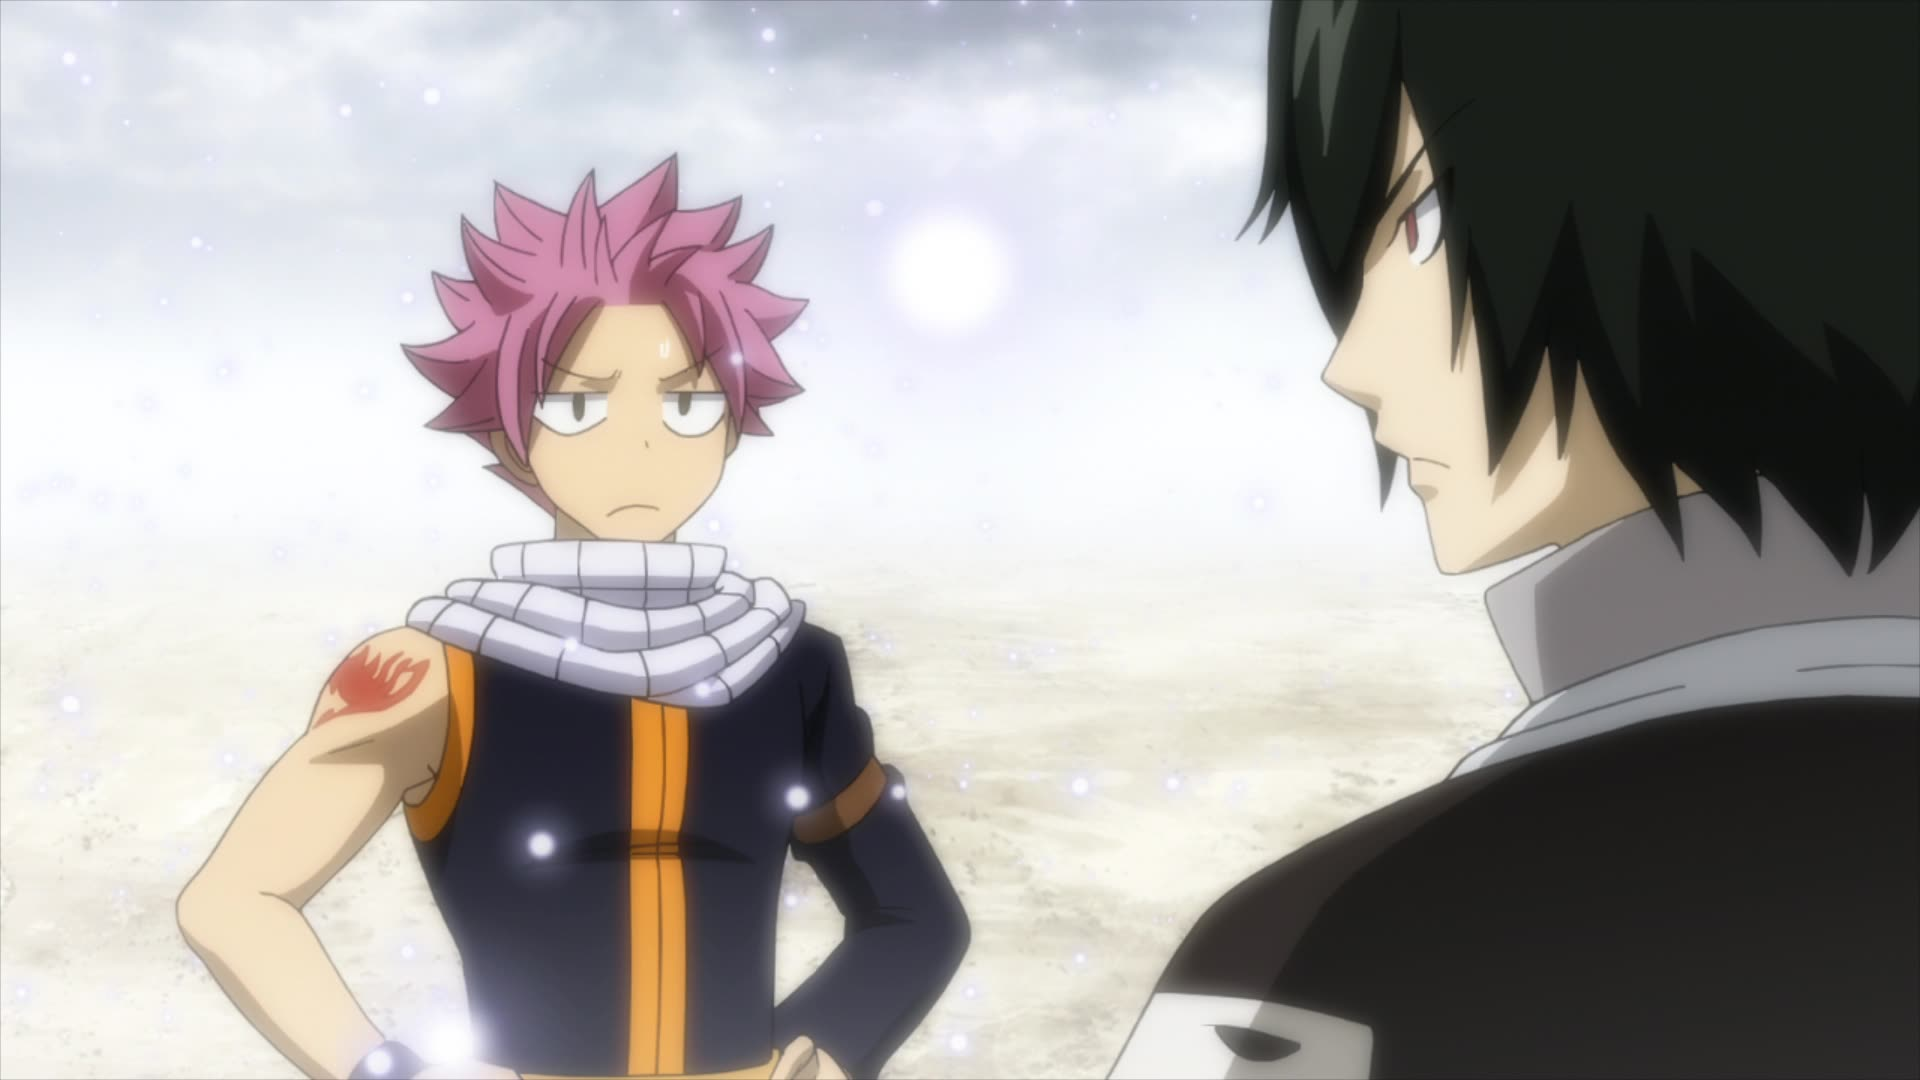 Fairy Tail Final Season Episode 312, Sting, the White Shadow